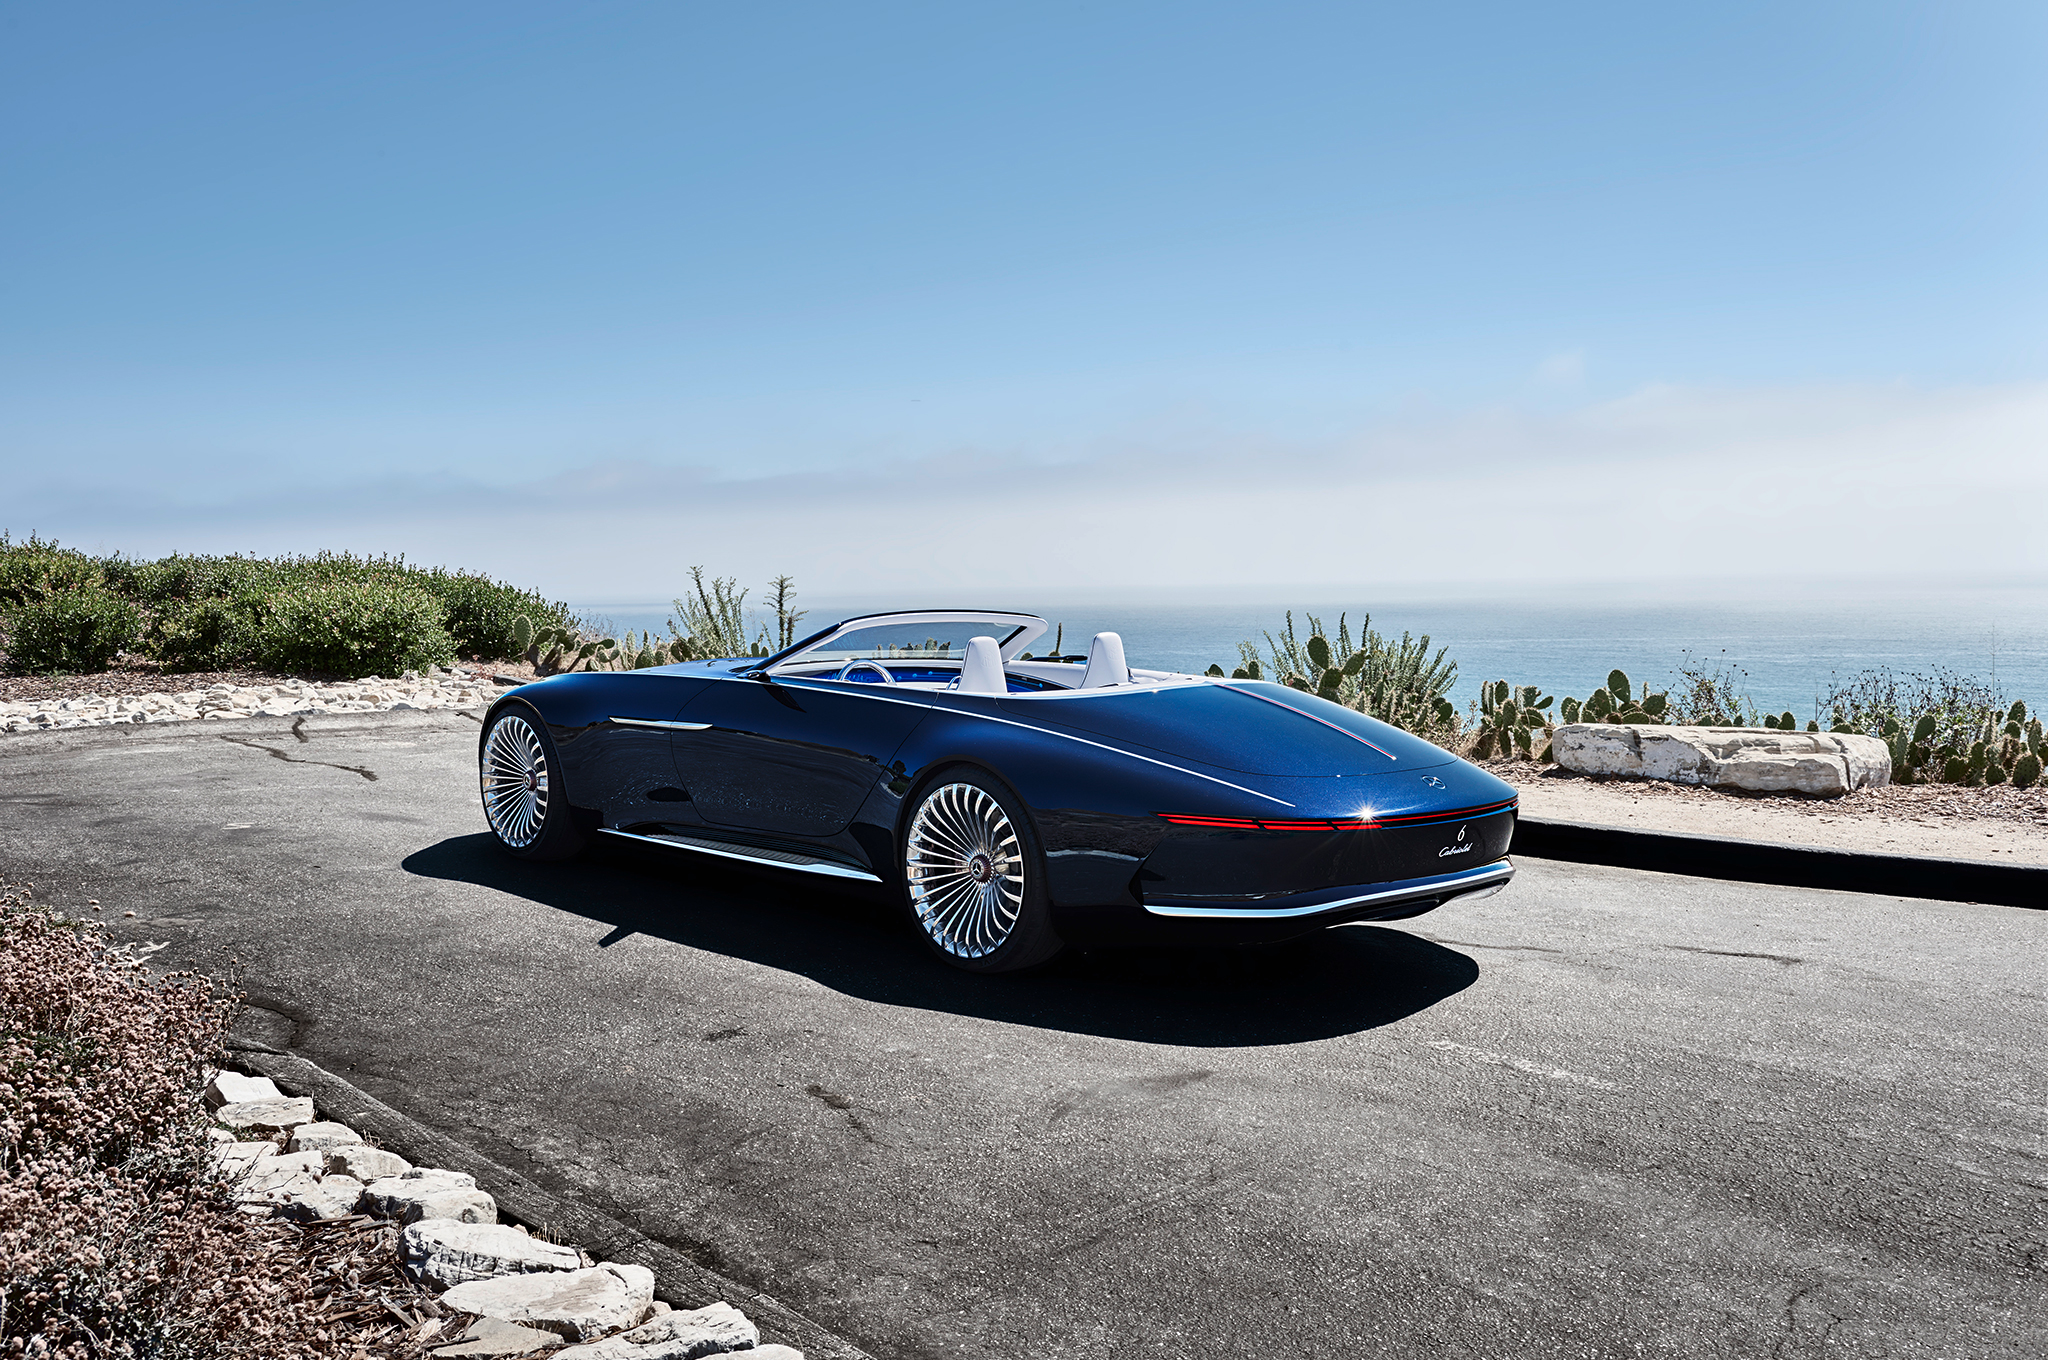 vision-mercedes-maybach-6-cabriolet-rear-three-quarters-top-down-02.jpg